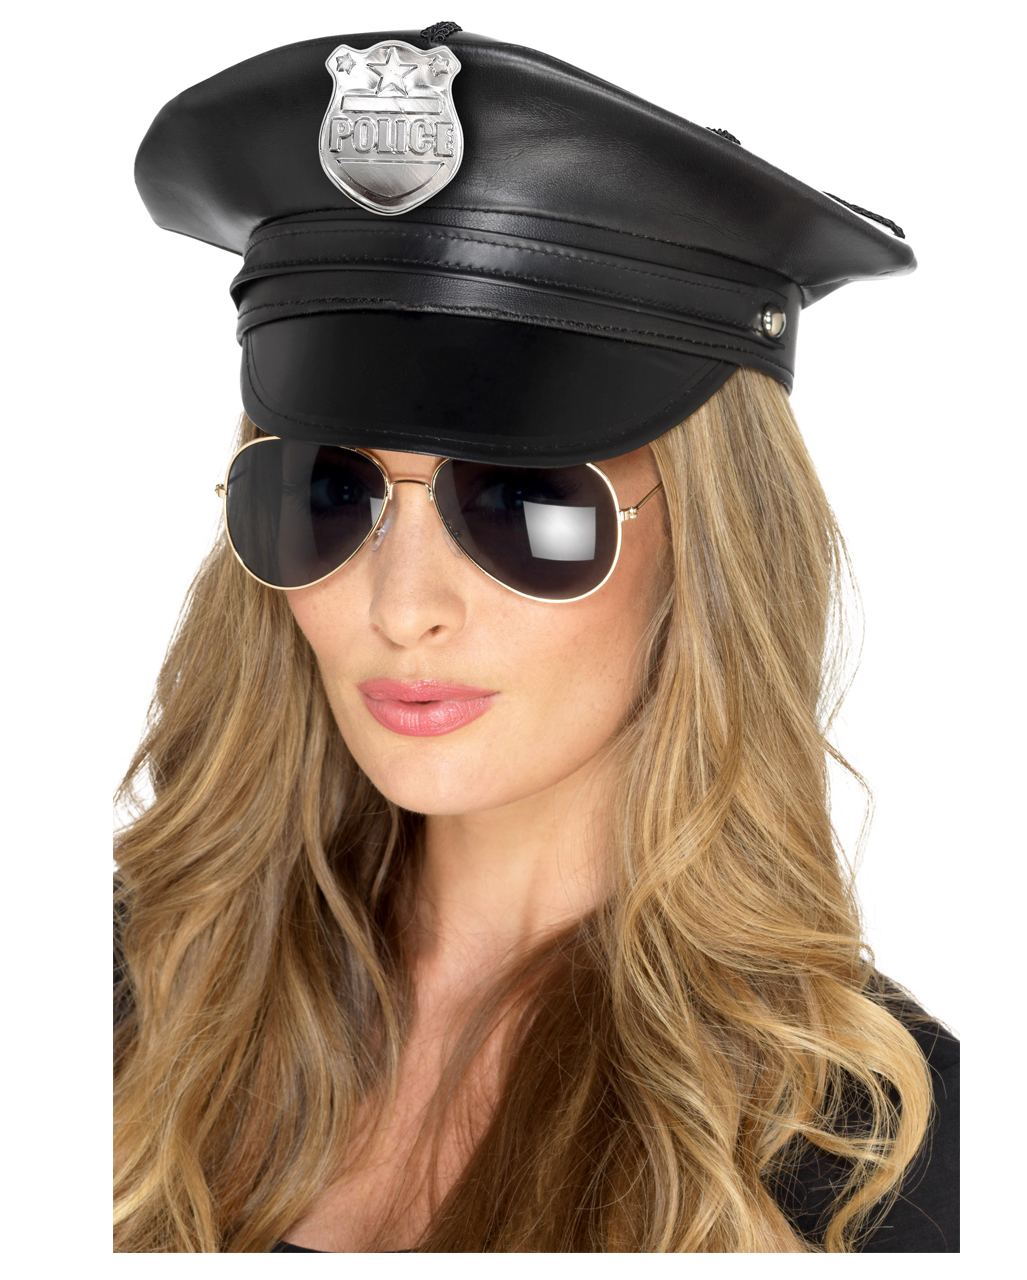 US Police Officer Police Hat US Police Officer Police Hat  sc 1 st  Horror-Shop & US Police Officer Police Hat as an accessory | horror-shop.com